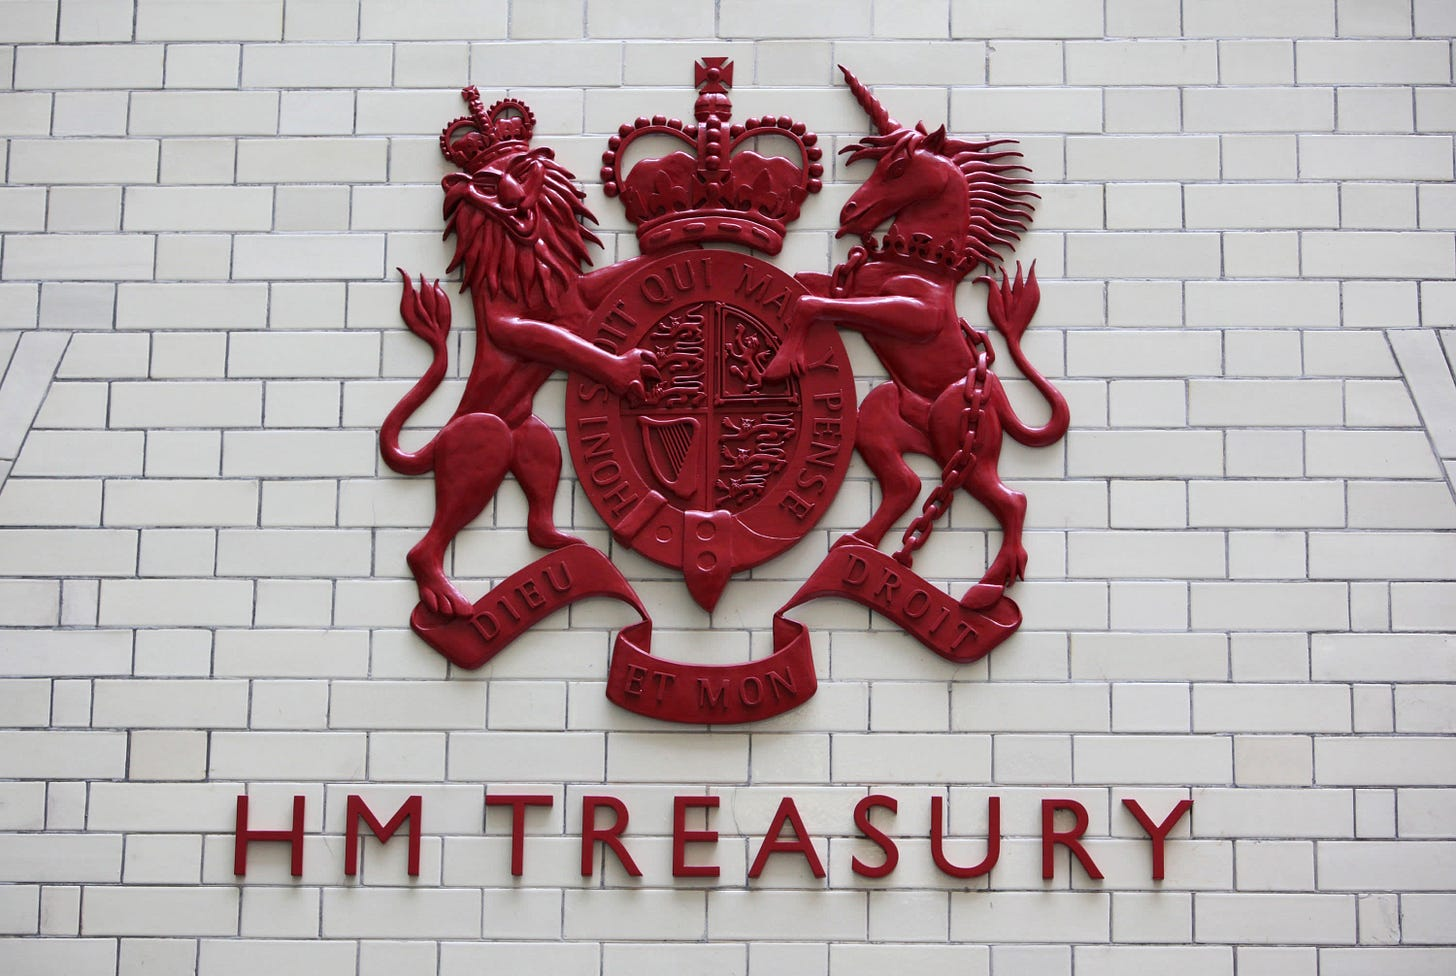 HM Treasury Announces £1 Billion Support Package for Innovative Firms | IW  Capital